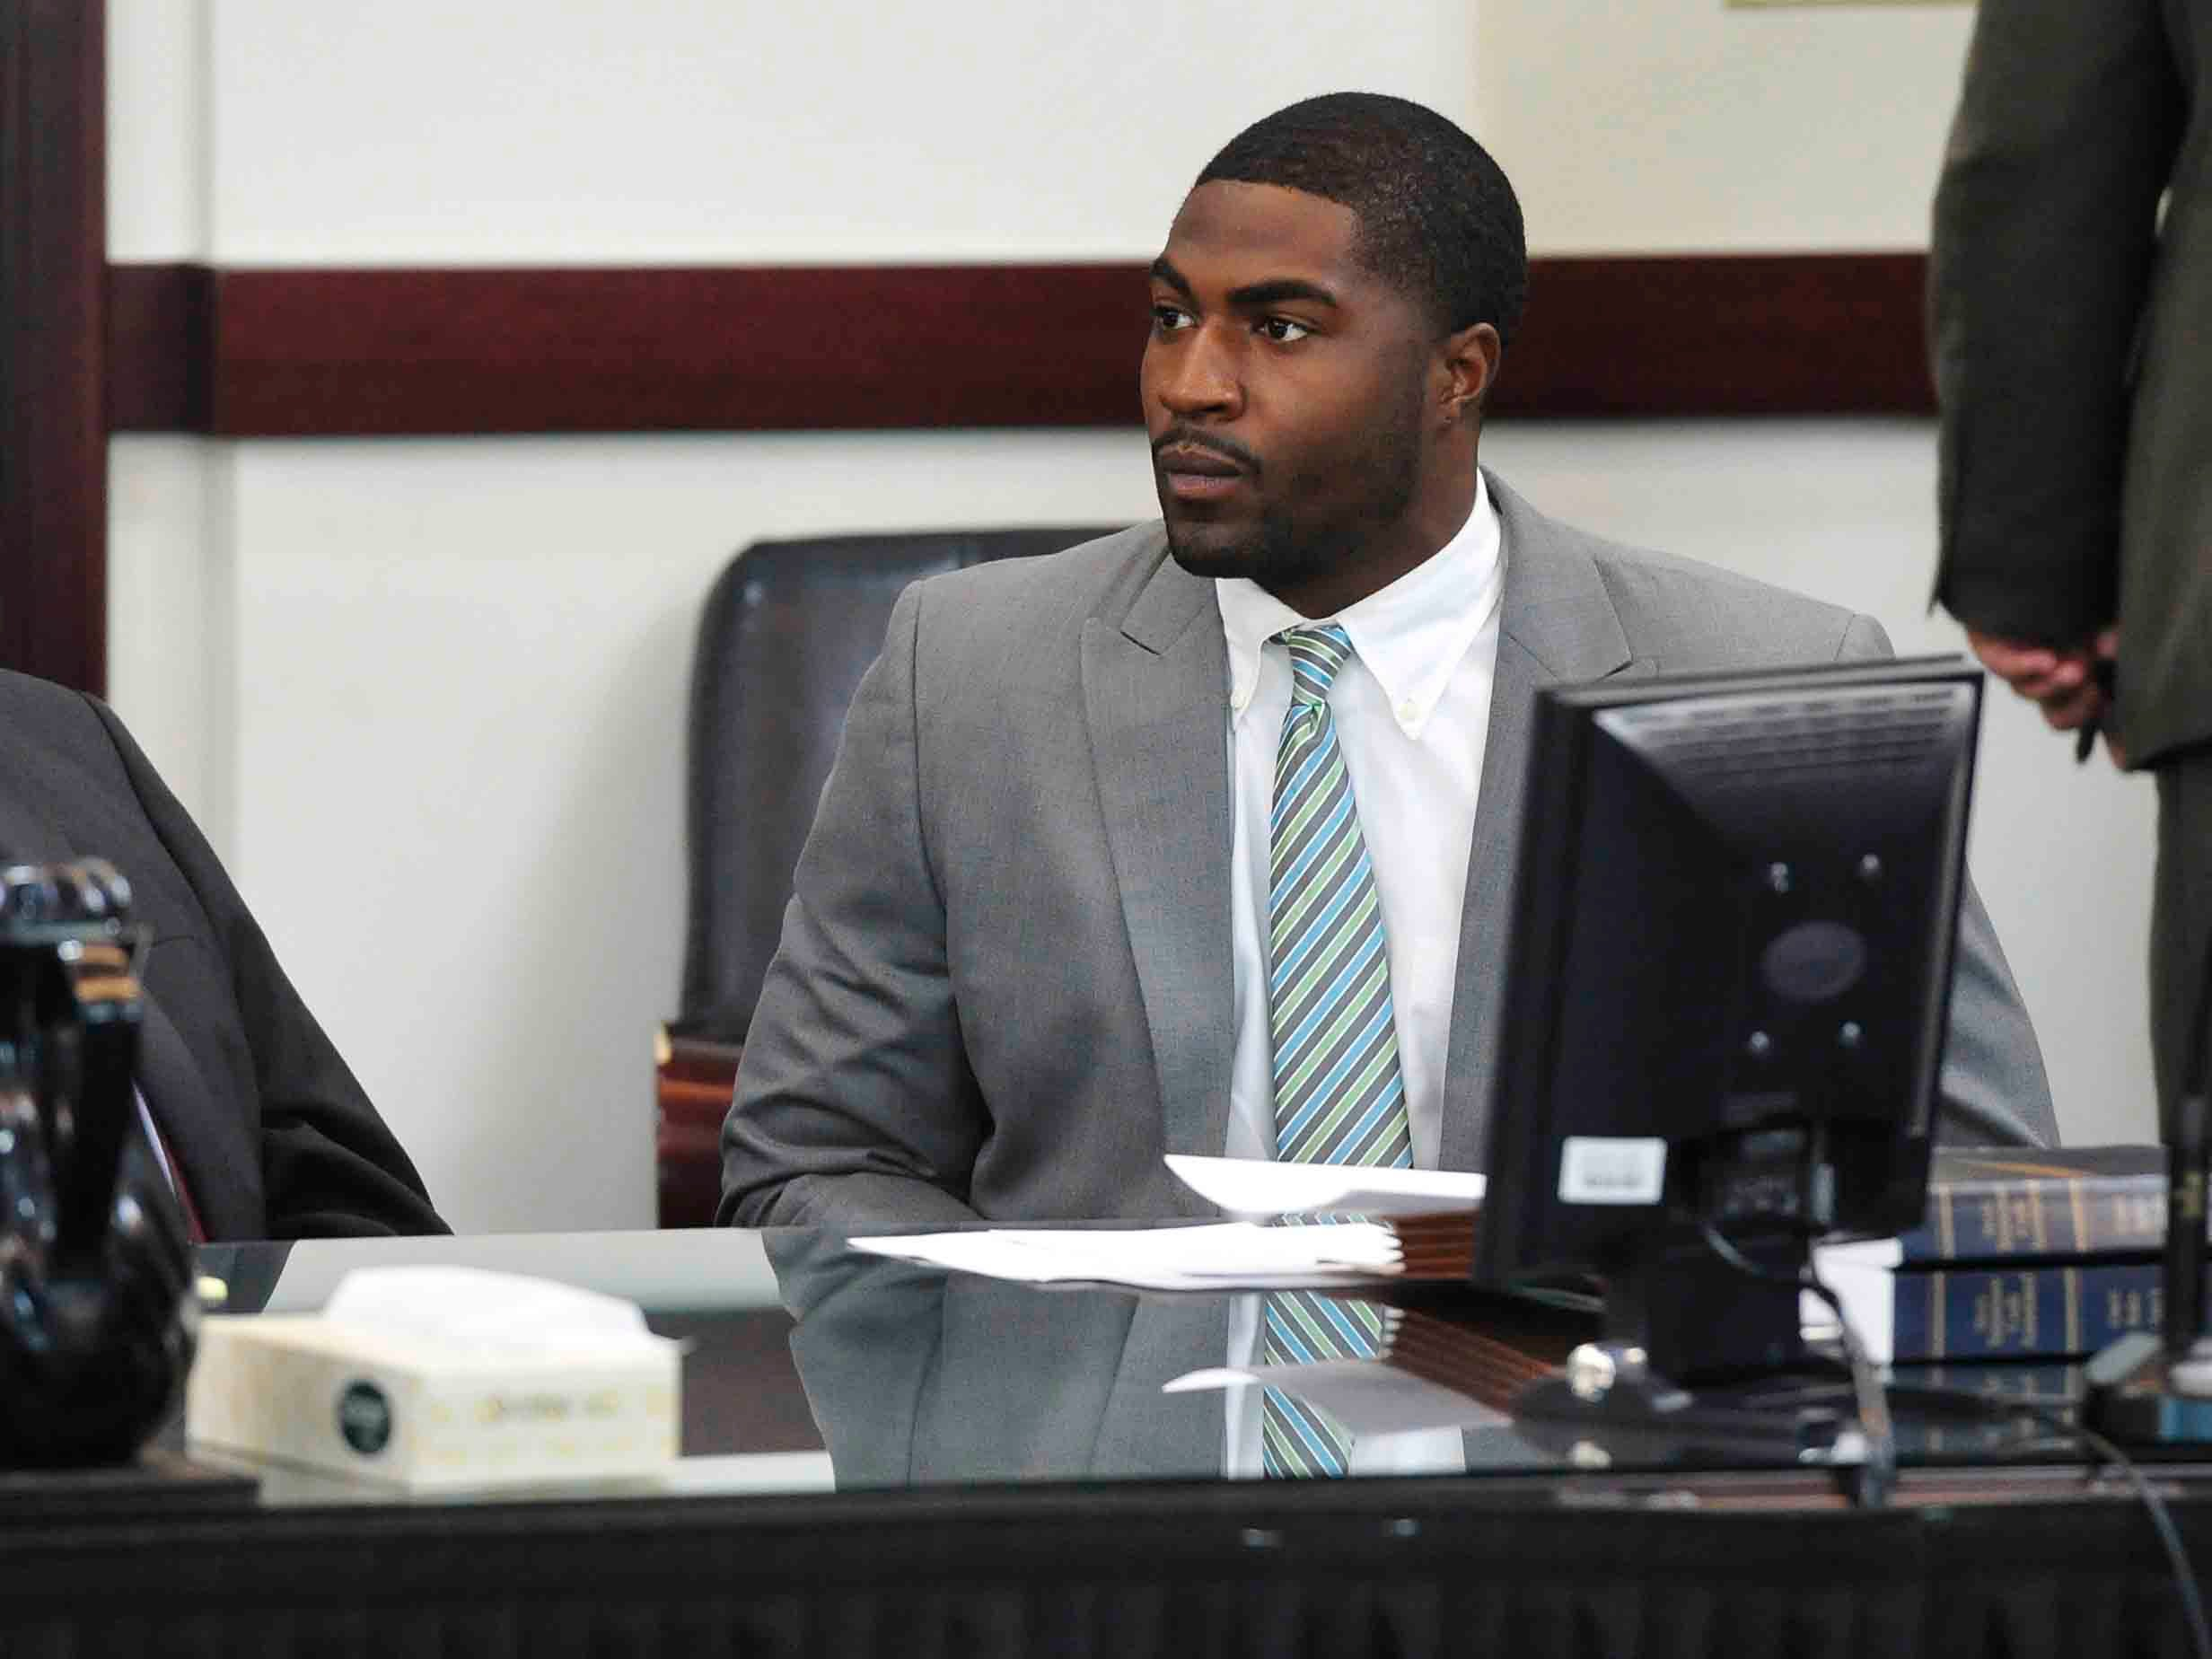 Defendant Brandon Cory Batey in court in the A. A. Birch building in downtown Nashville, Tenn. November 3, 2014. Batey's attorney Worrick Robinson injured his bicep over the weekend and is at the doctor. The injury has delayed the start of the trial.